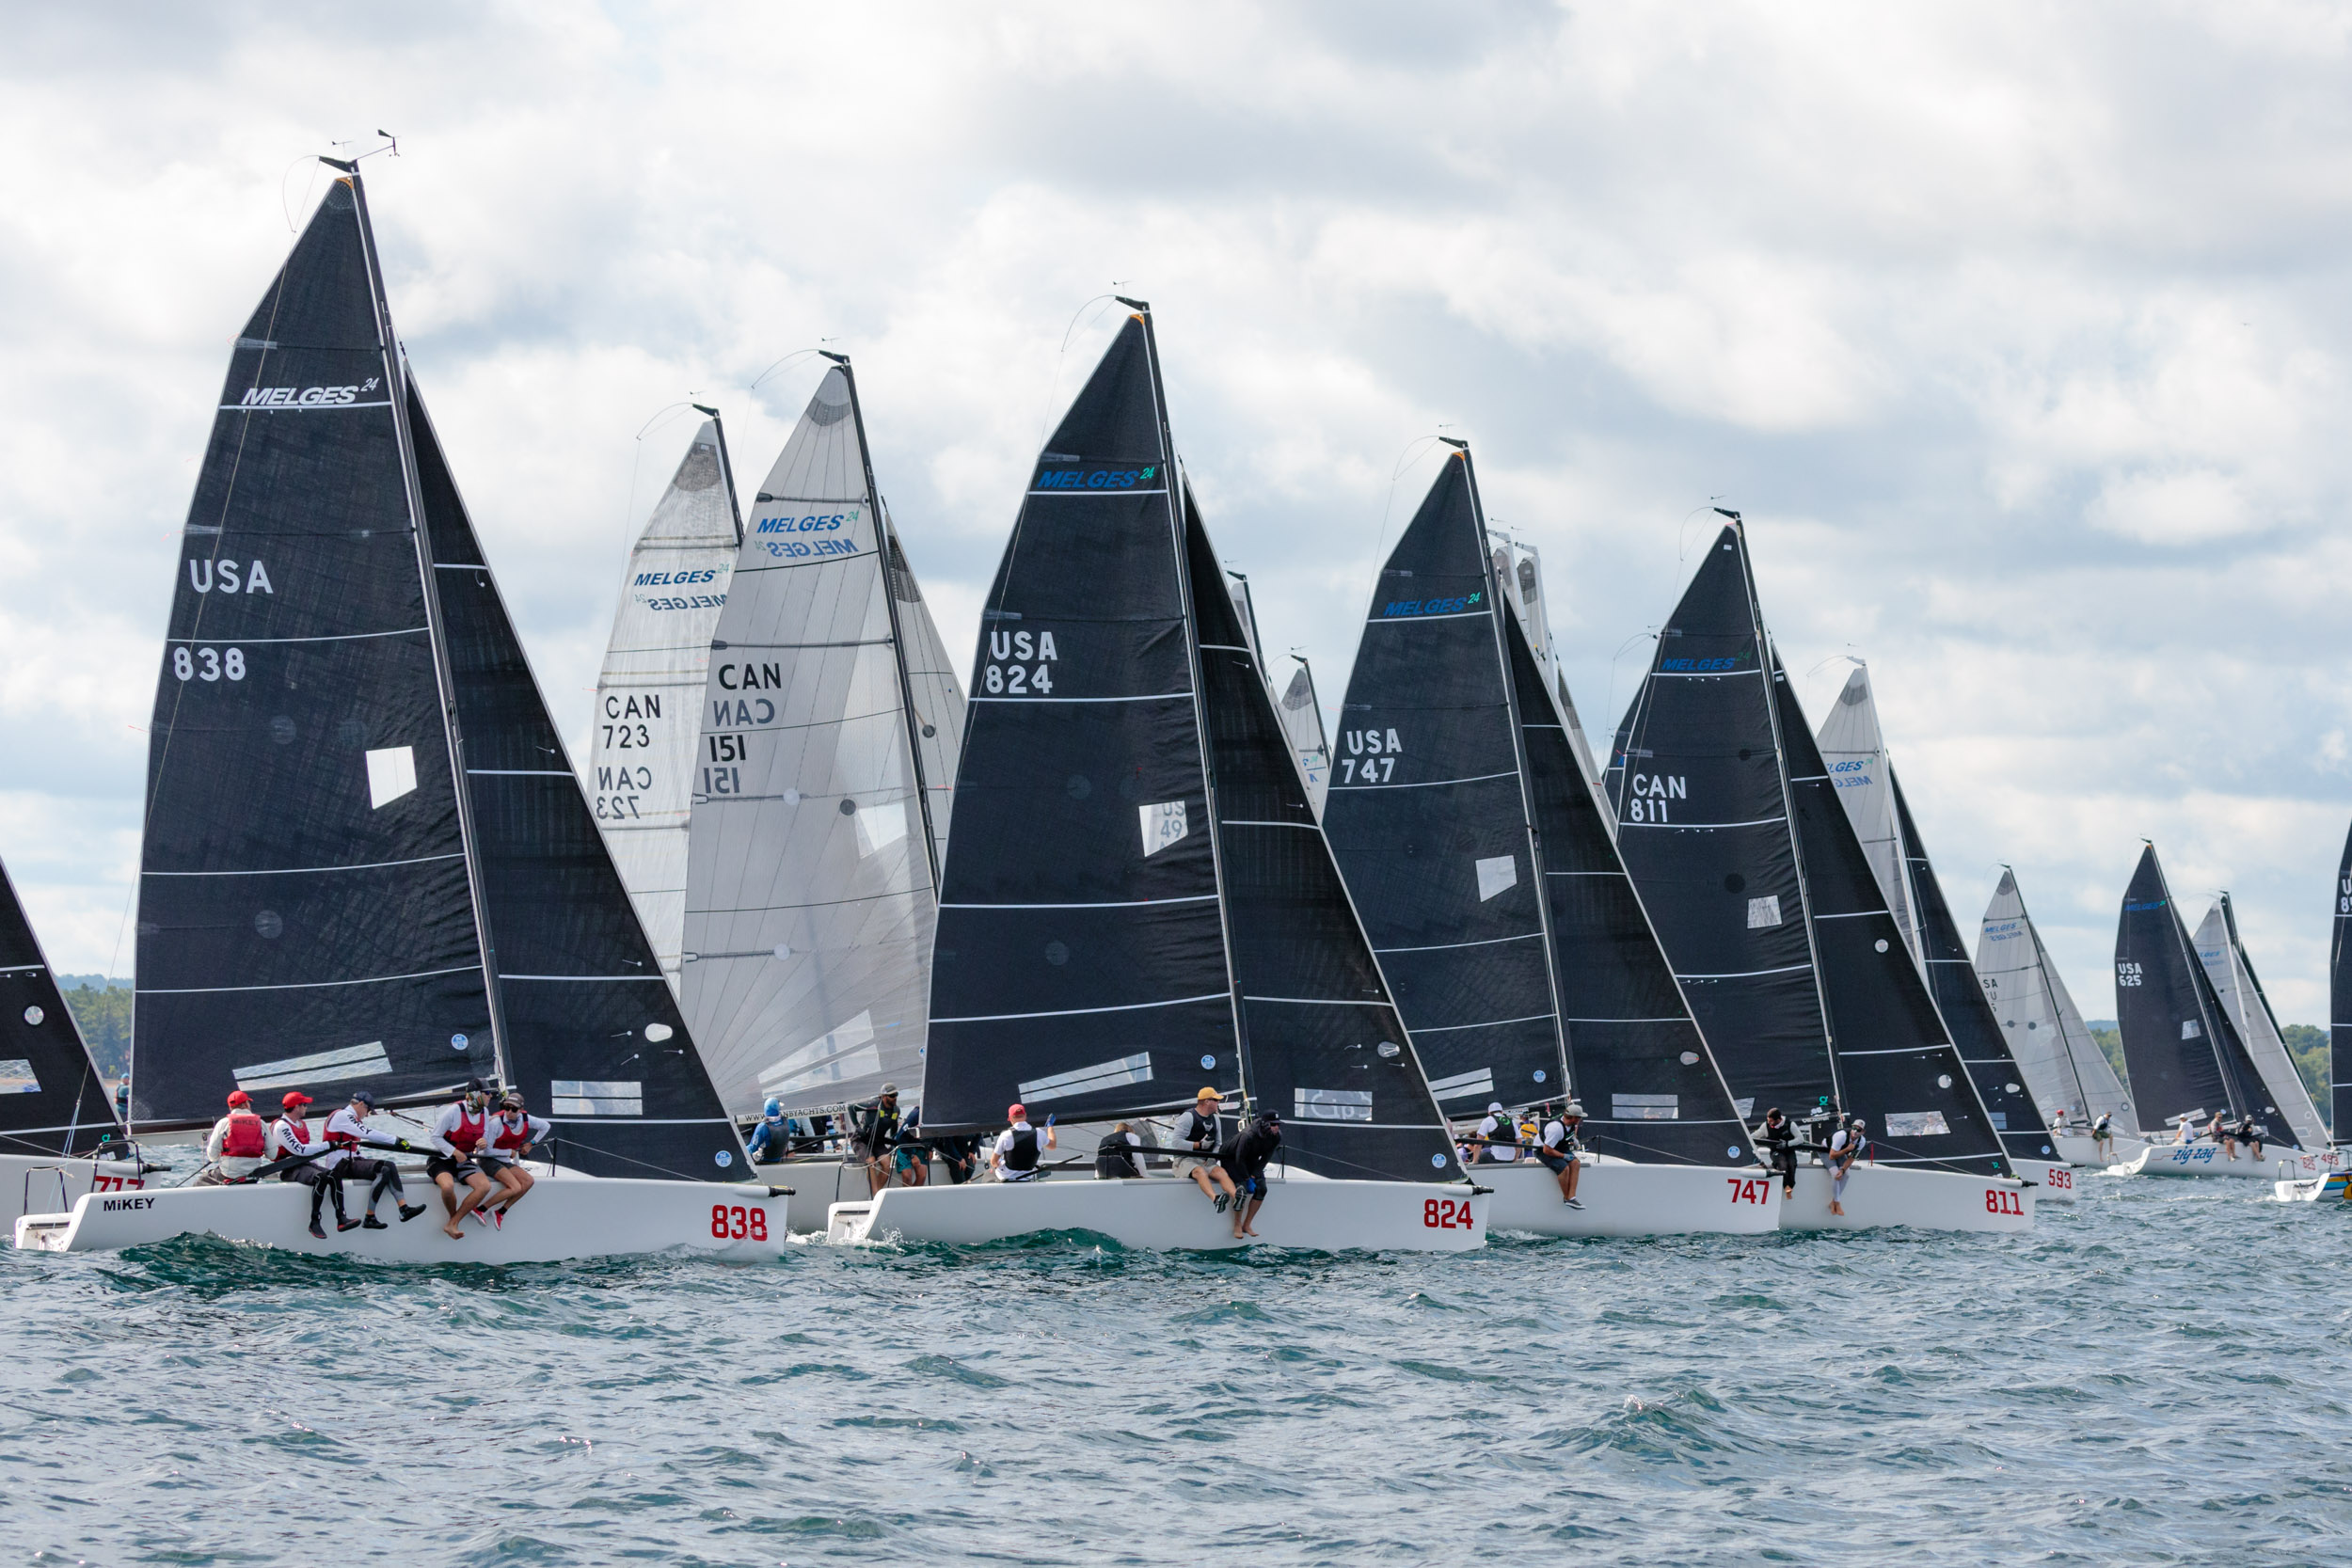 Richard Reid' s  Zingara  (CAN811) had great starts and solid racing to maintain the overnight lead once again at the 2019 Melges 24 North American Championship.- ©Bill Crawford - Harbor Pictures Company